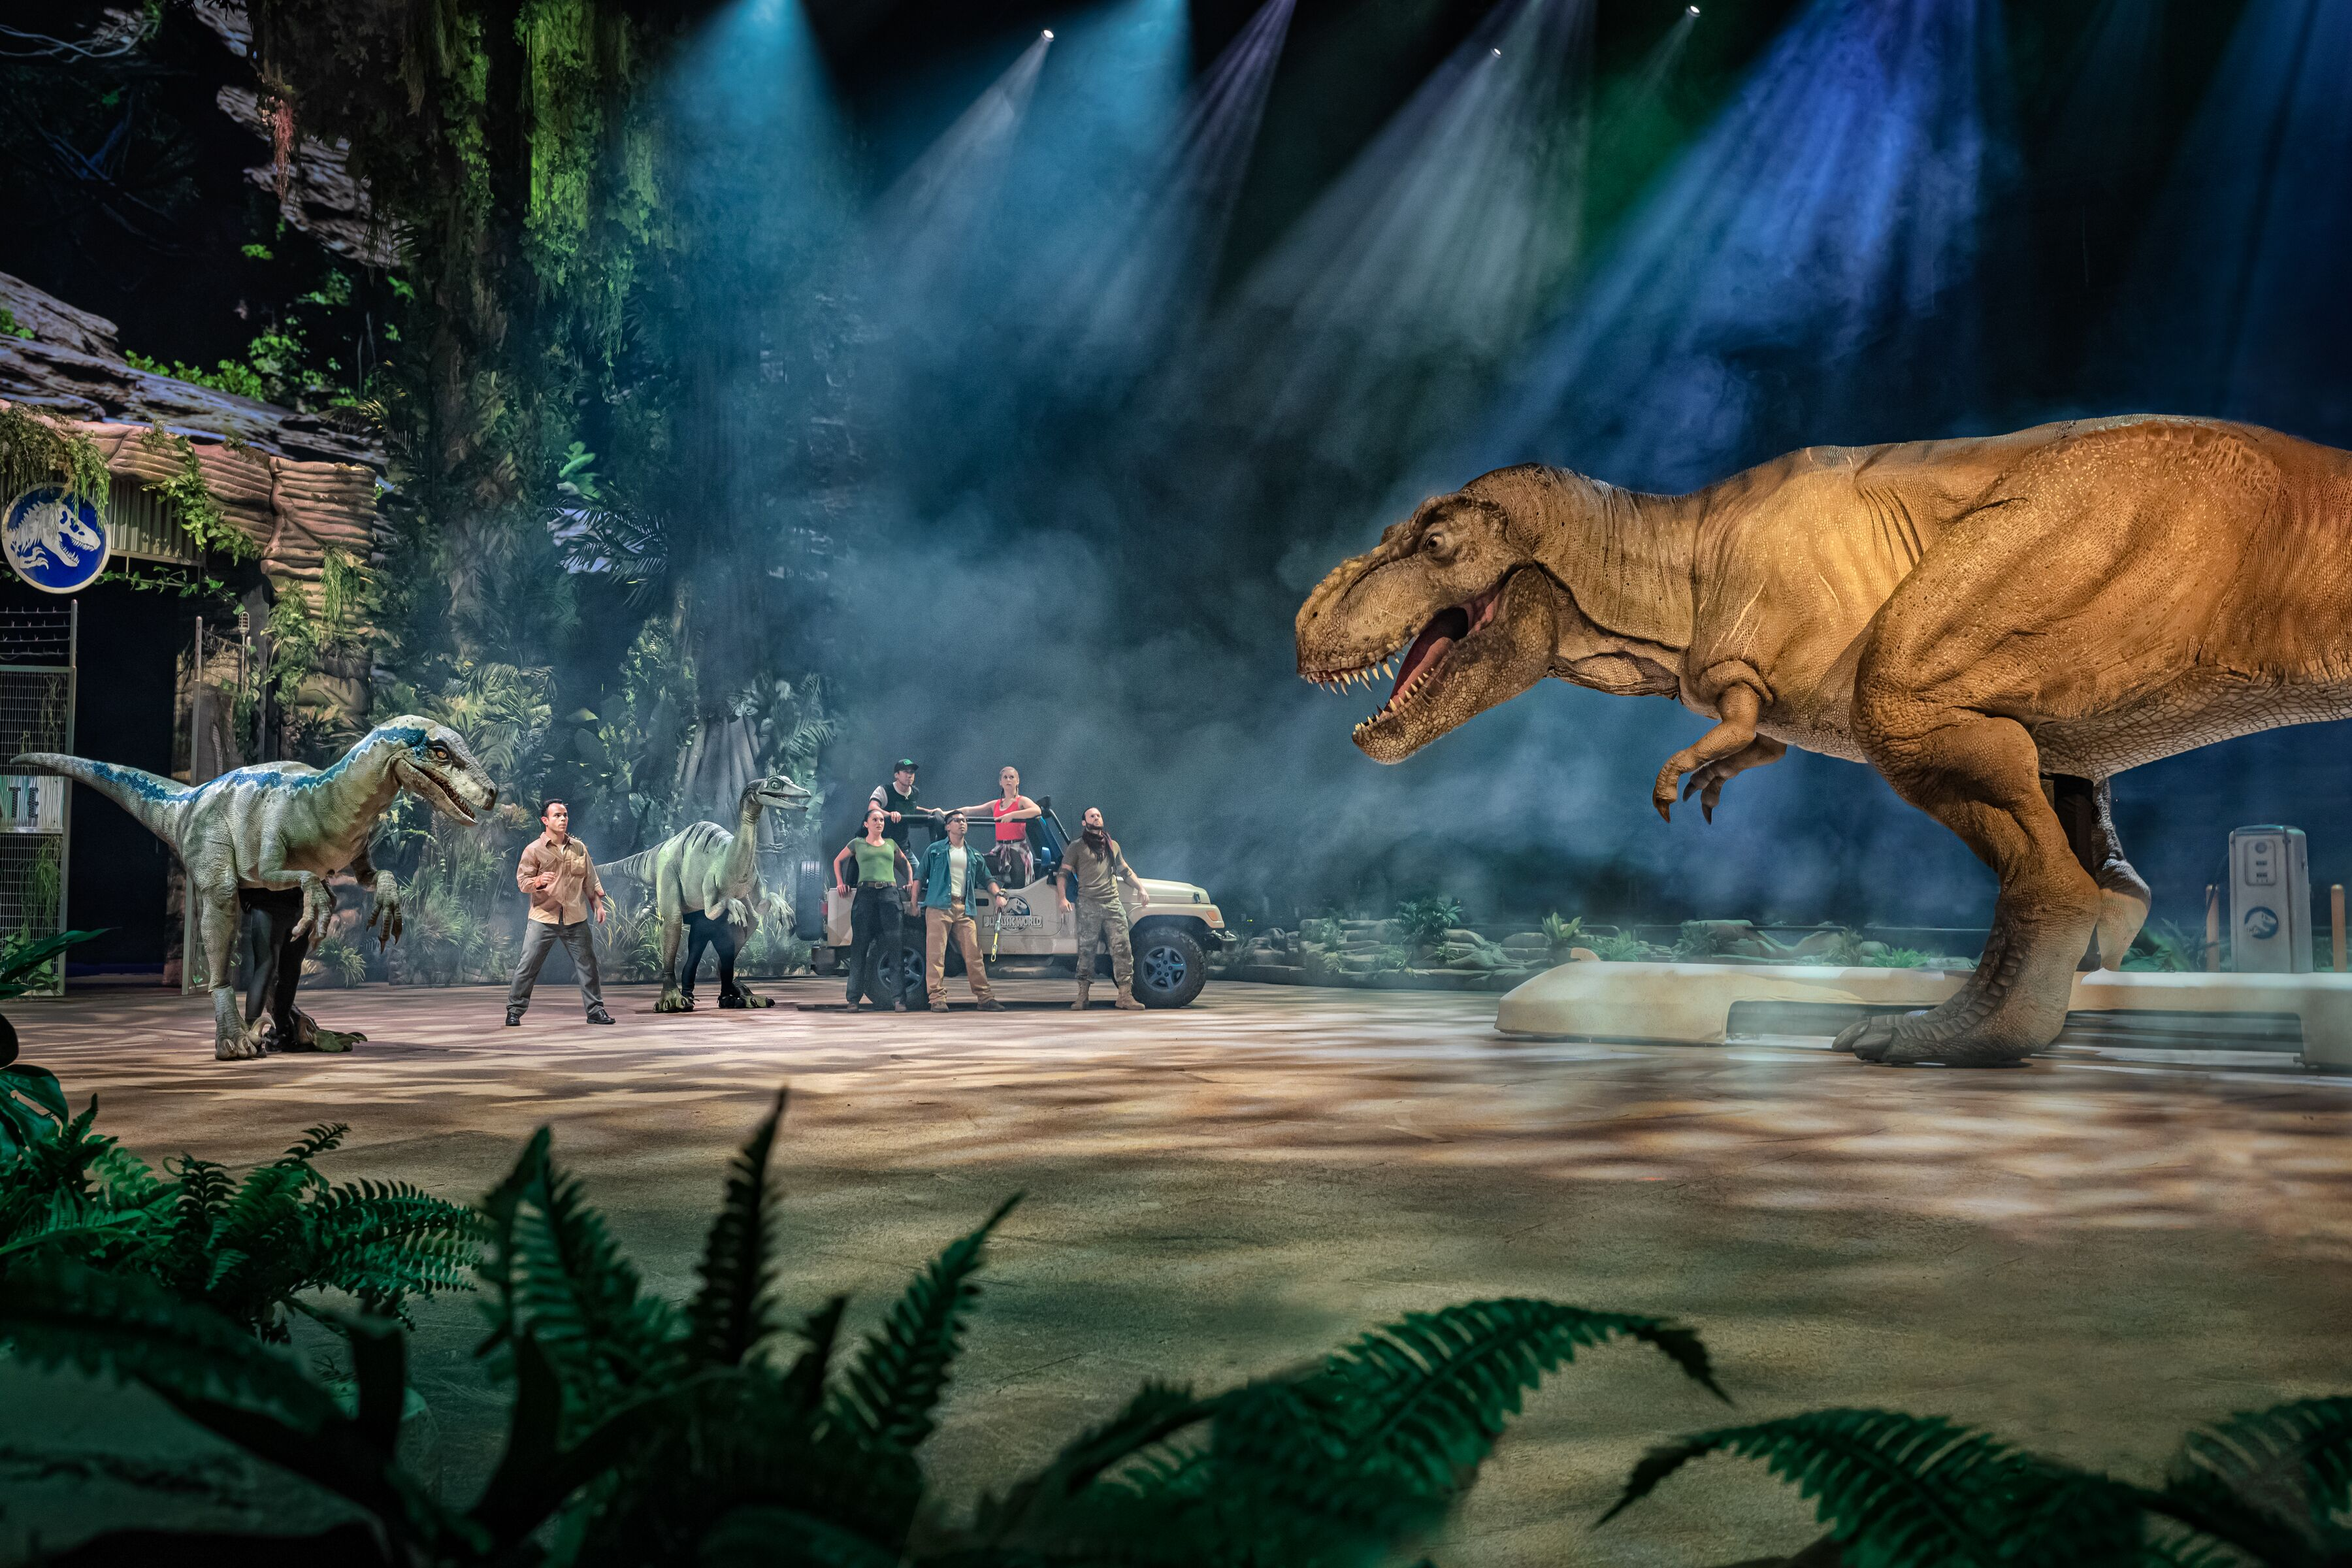 Jurassic World Live Tour is a spectacle that brings the magic of the movies to life